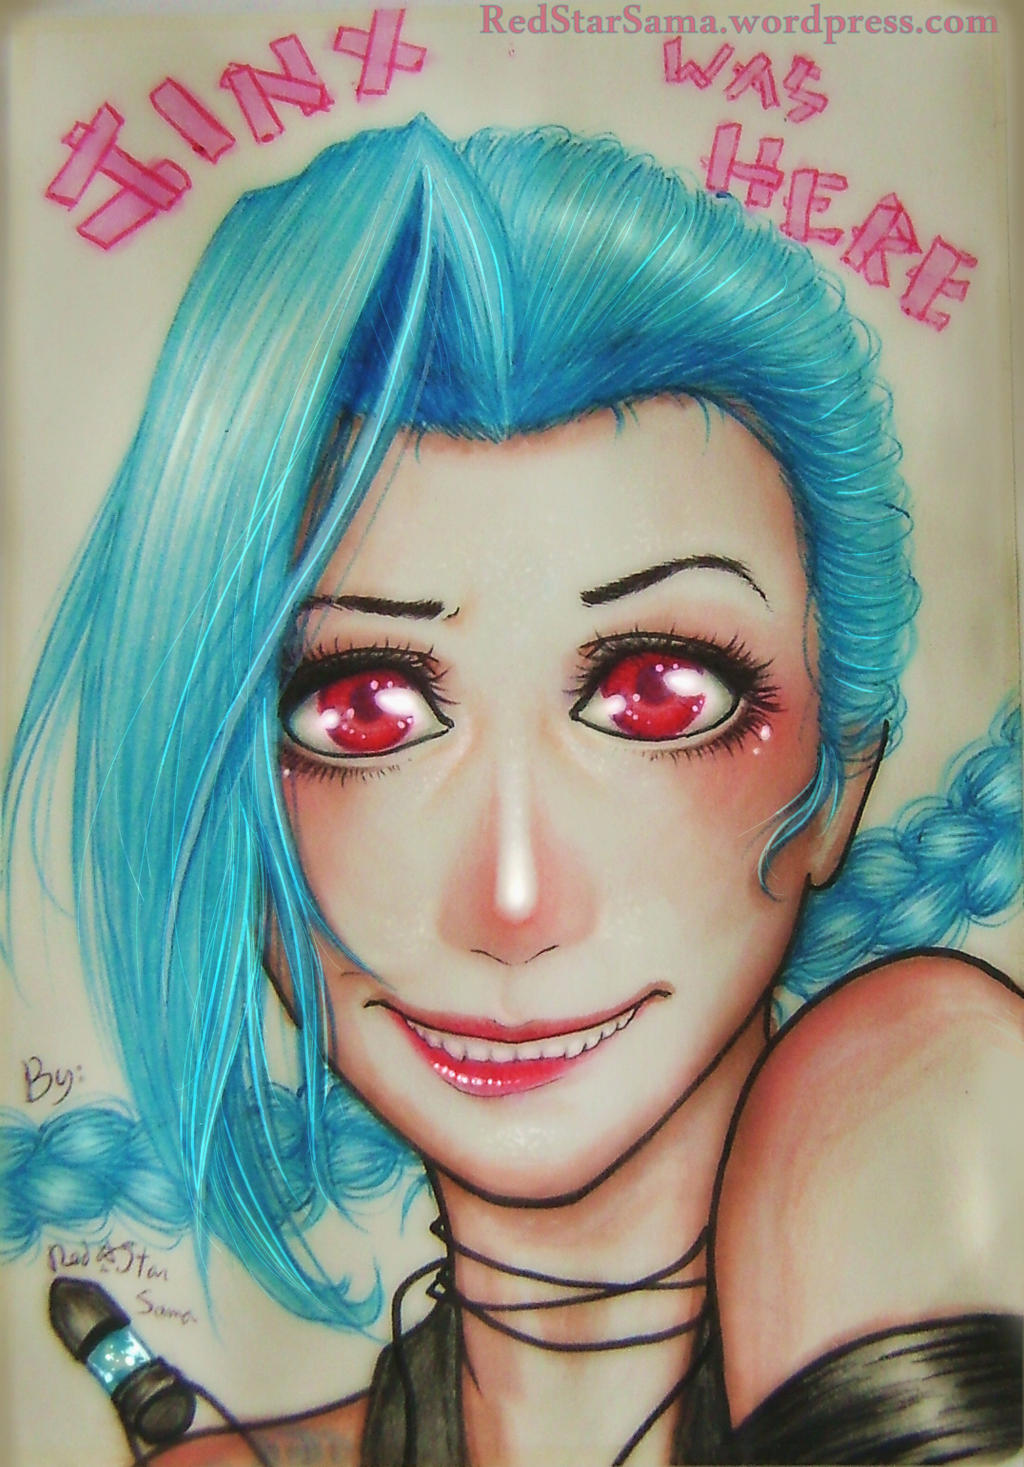 JINX WAS HERE by RedStar-Sama